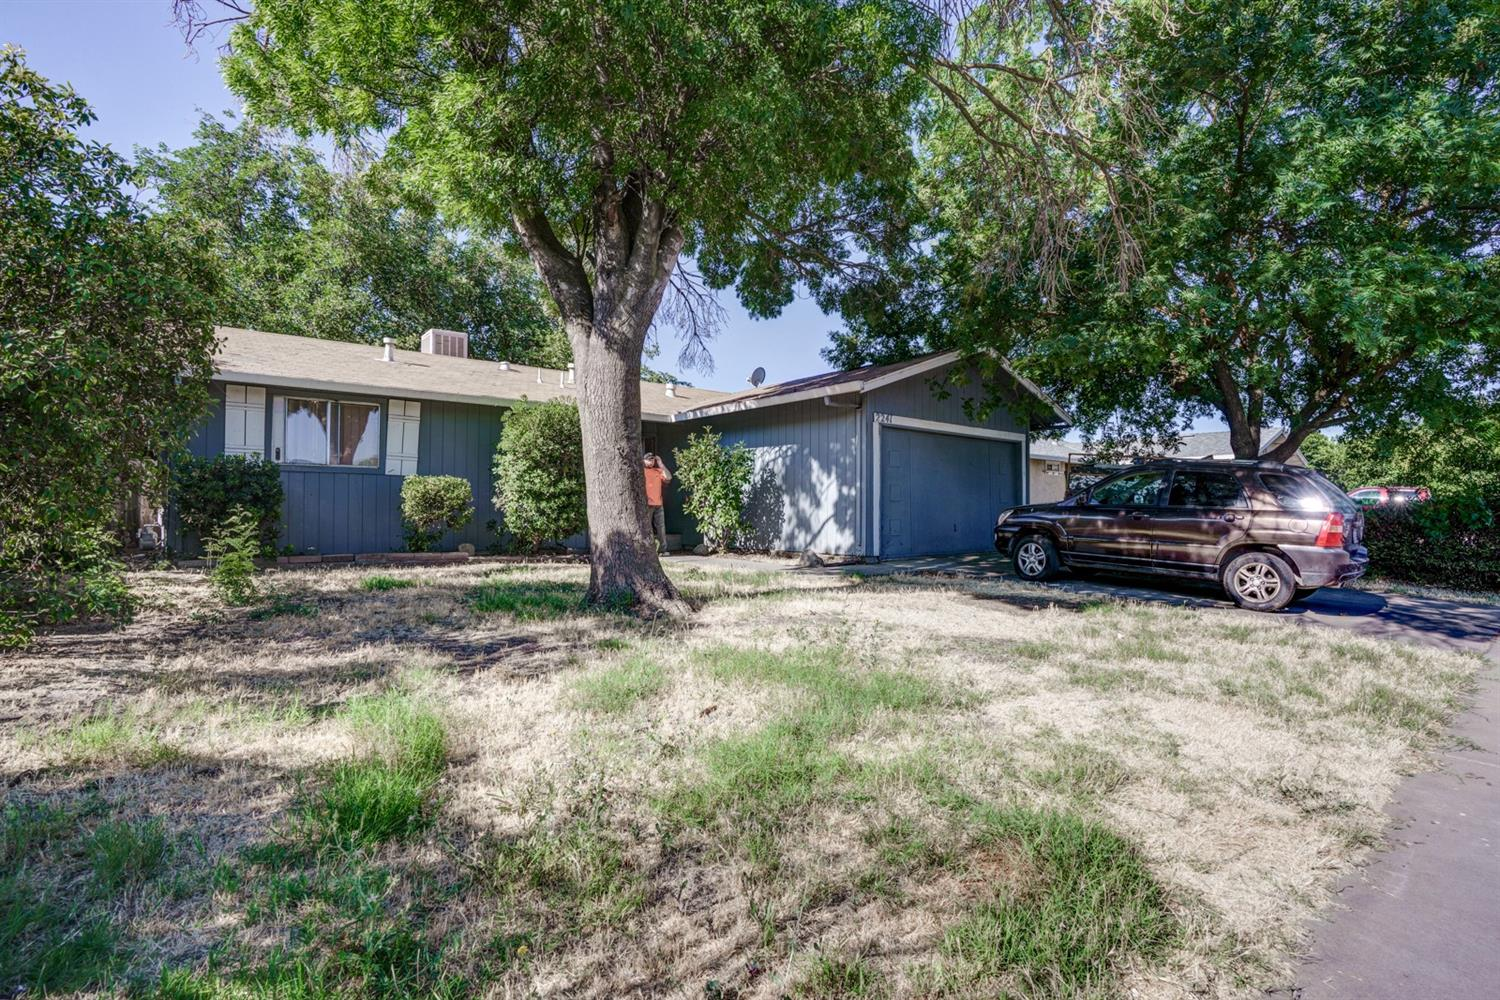 2241 Willow St, Dos Palos, CA, 93620